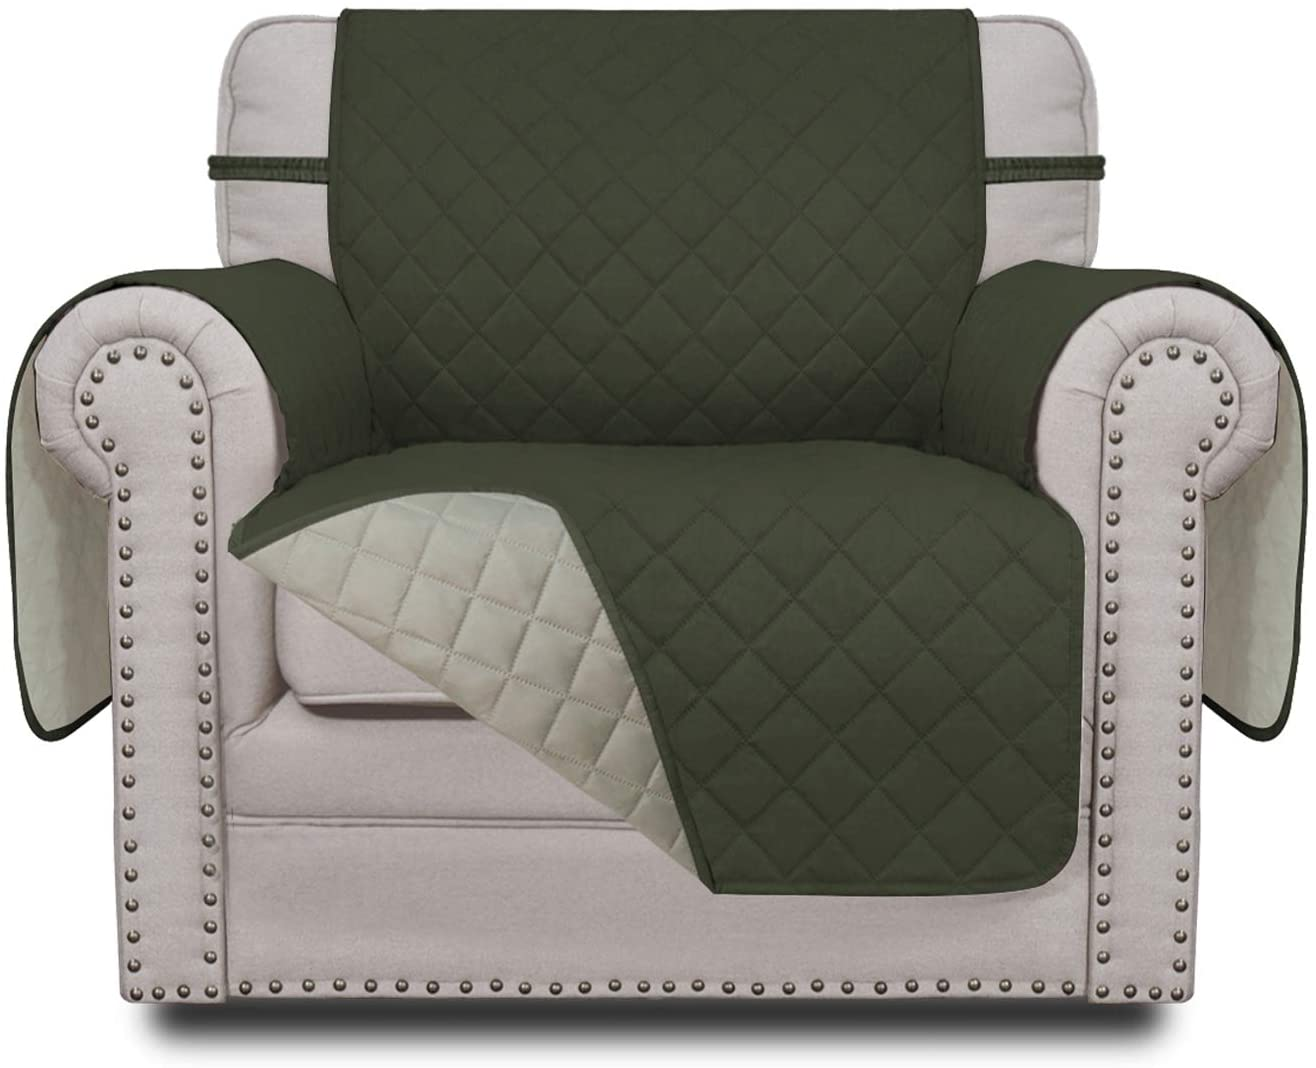 Easy-Going Sofa Slipcover Reversible Chair Cover Water Resistant Couch Cover Furniture Protector with Elastic Straps for Pets Kids Children Dog Cat(Chair,Army Green/Beige)